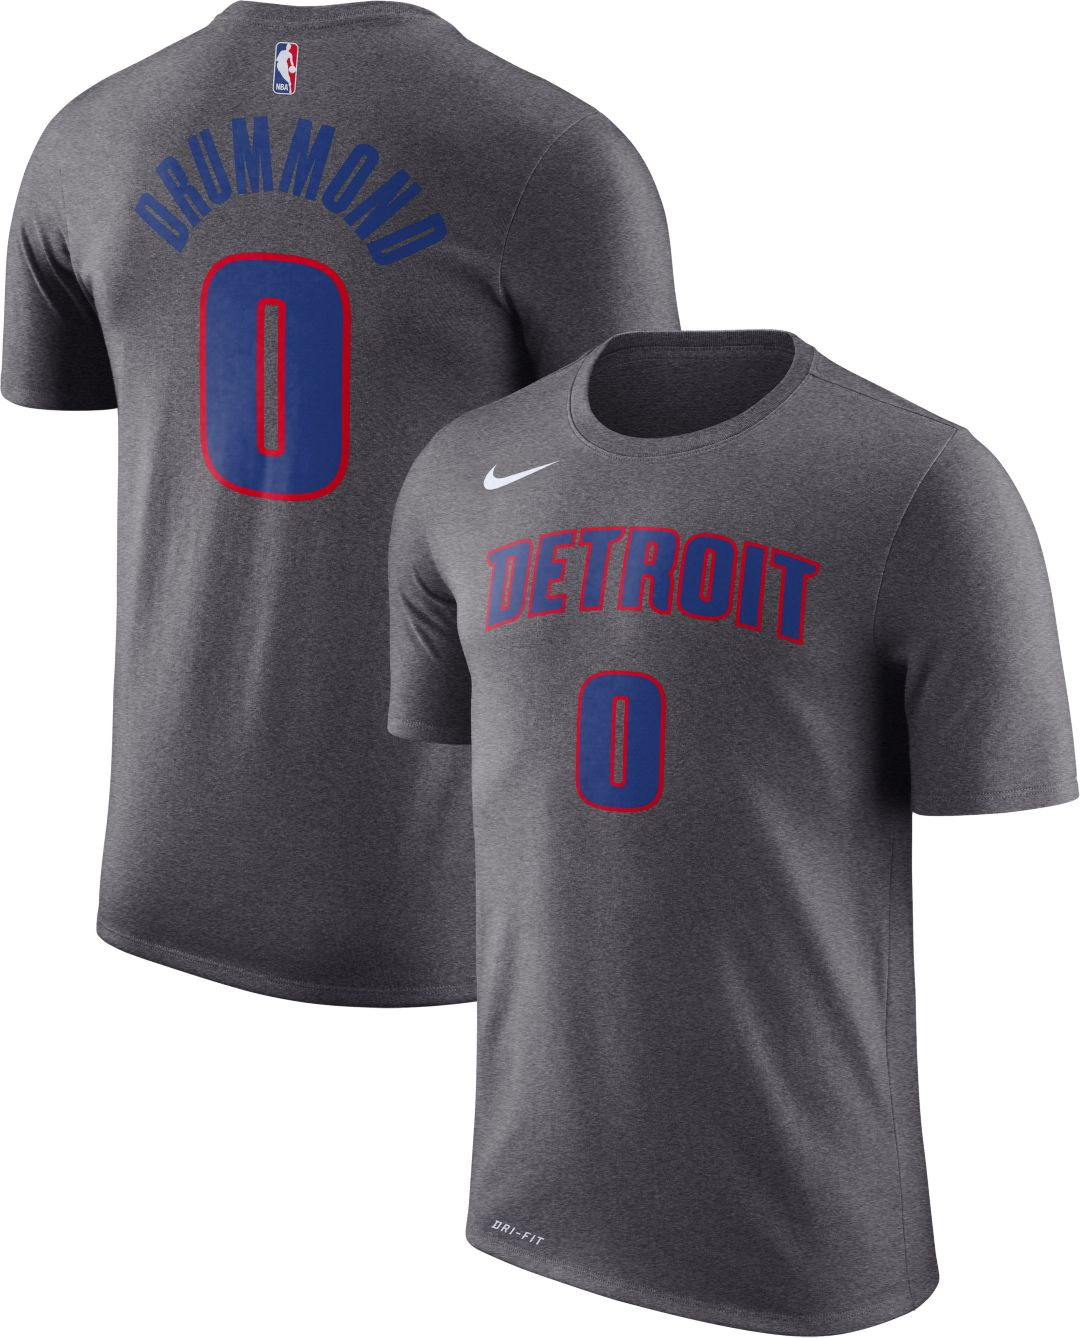 competitive price 13dc2 cb51c Nike Youth Detroit Pistons Andre Drummond #0 Dri-FIT Grey T-Shirt